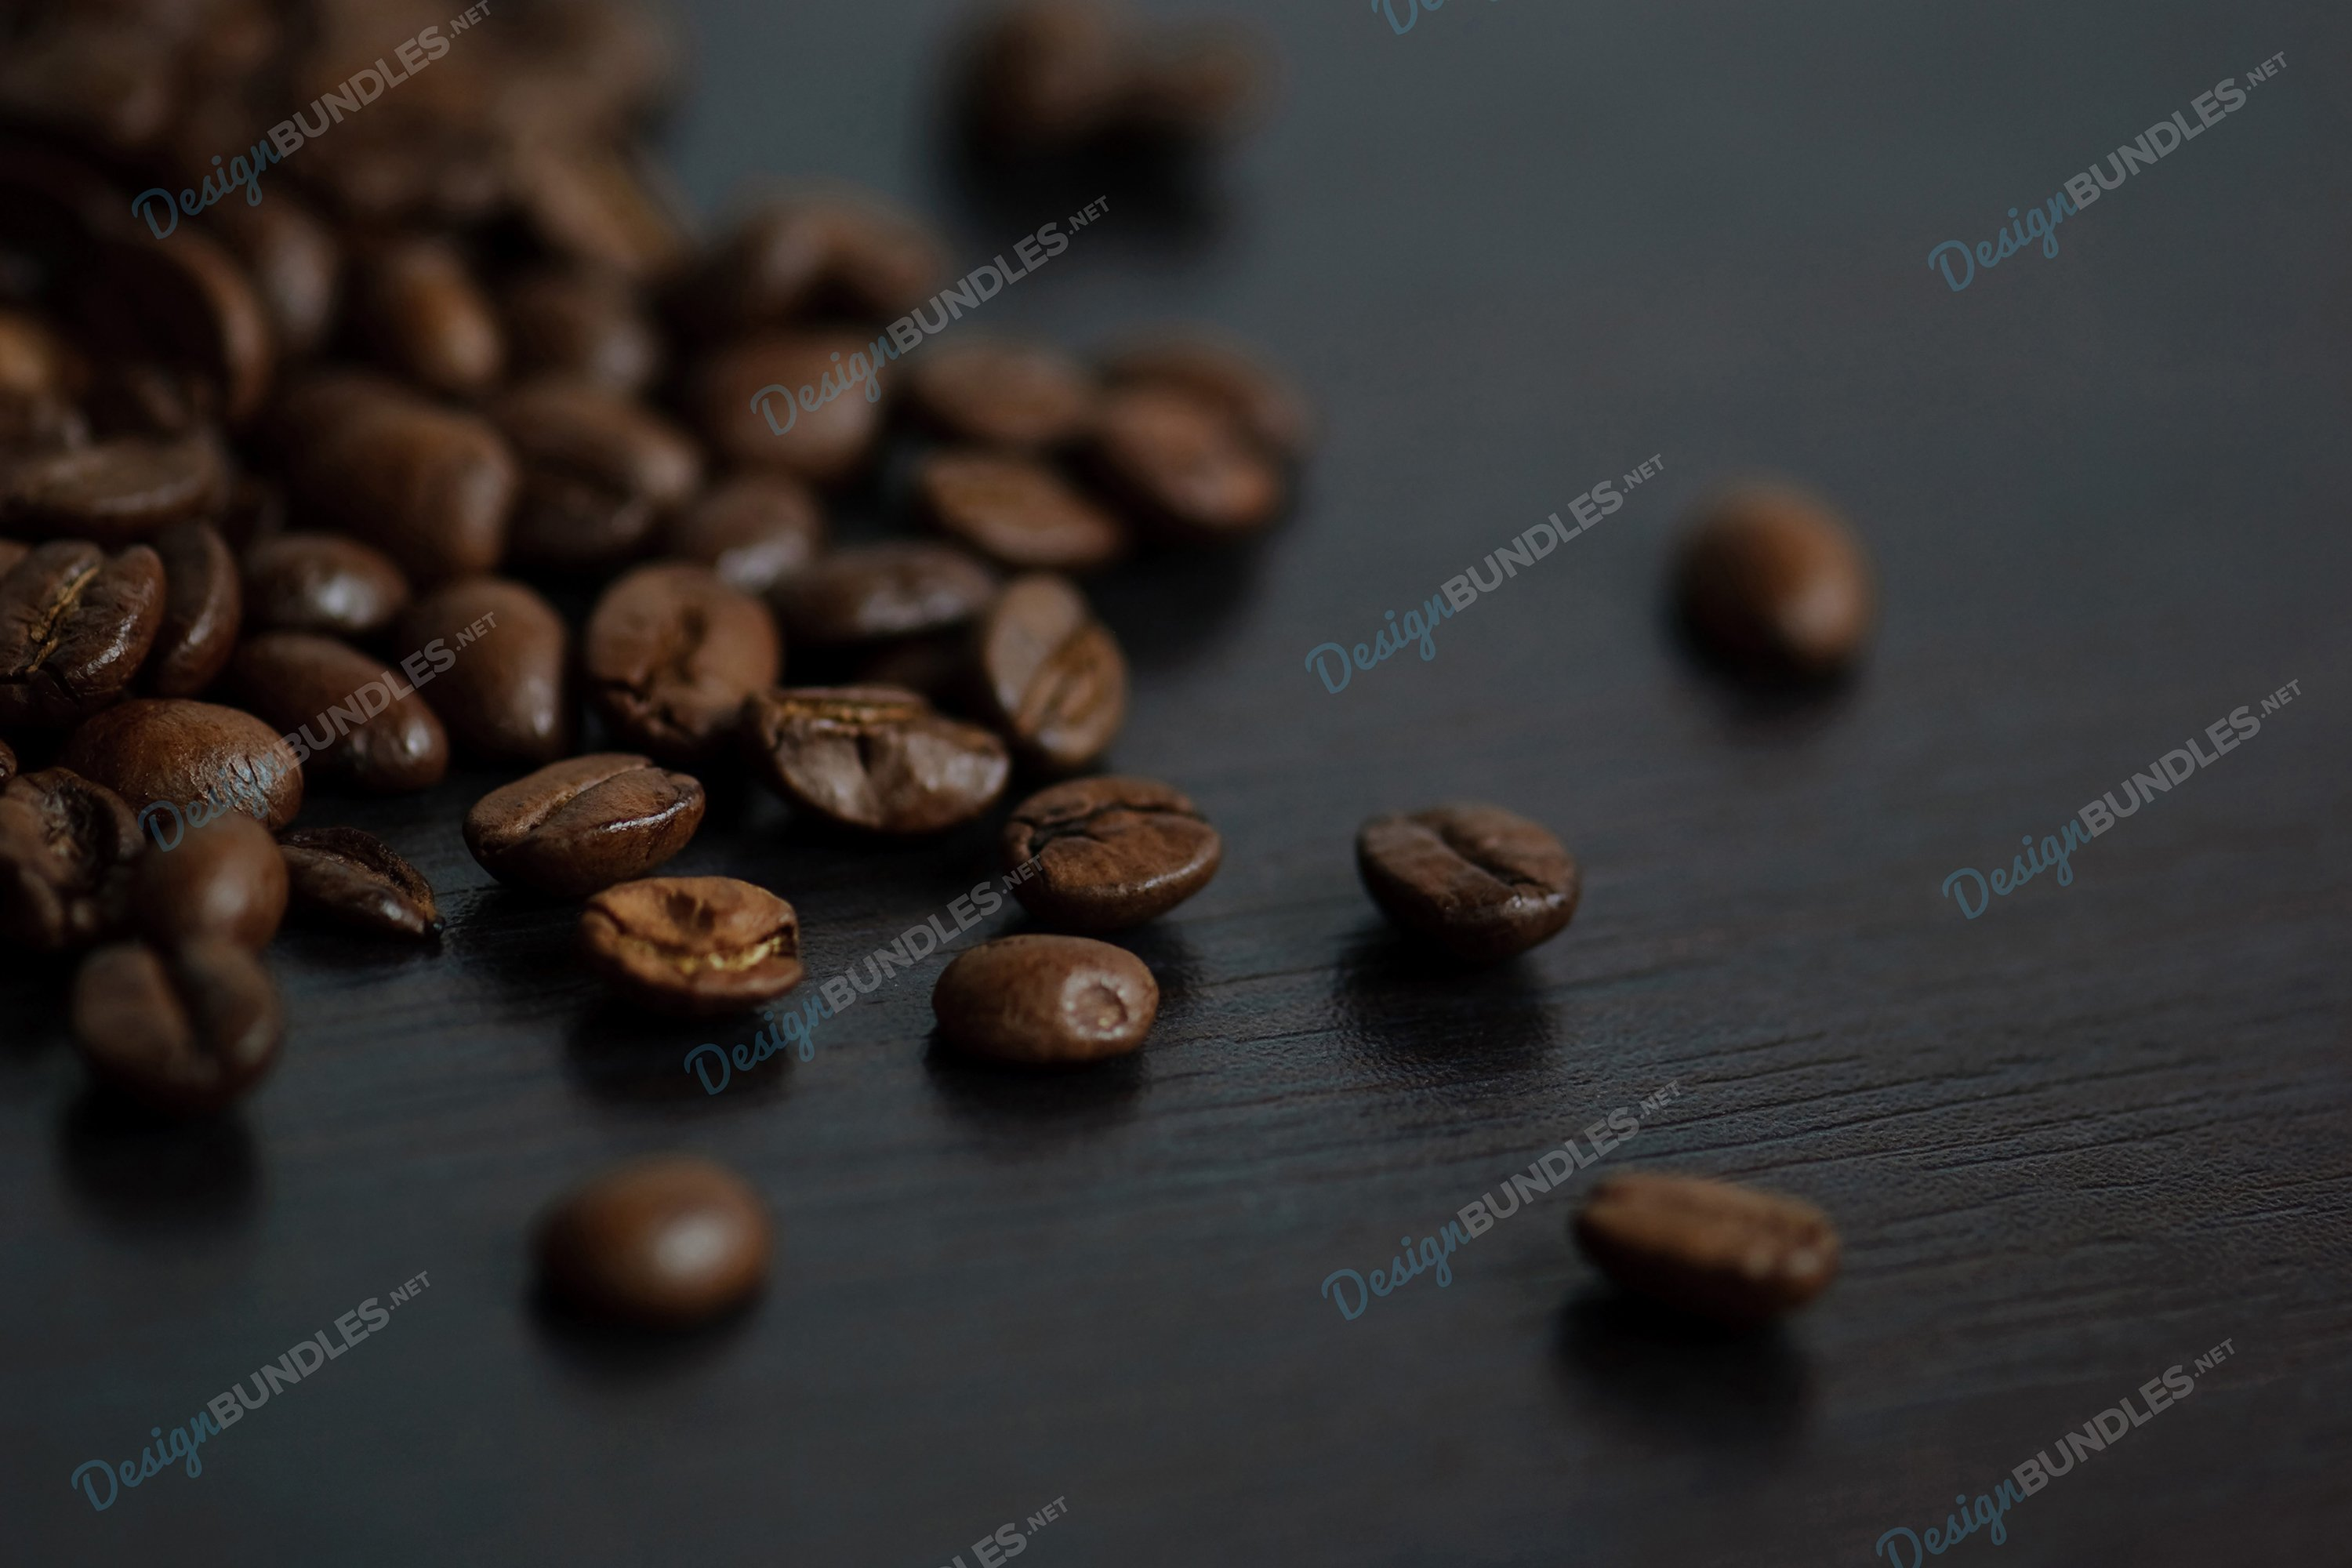 Stock Photo - Roasted coffee beans on a slate plate example image 1